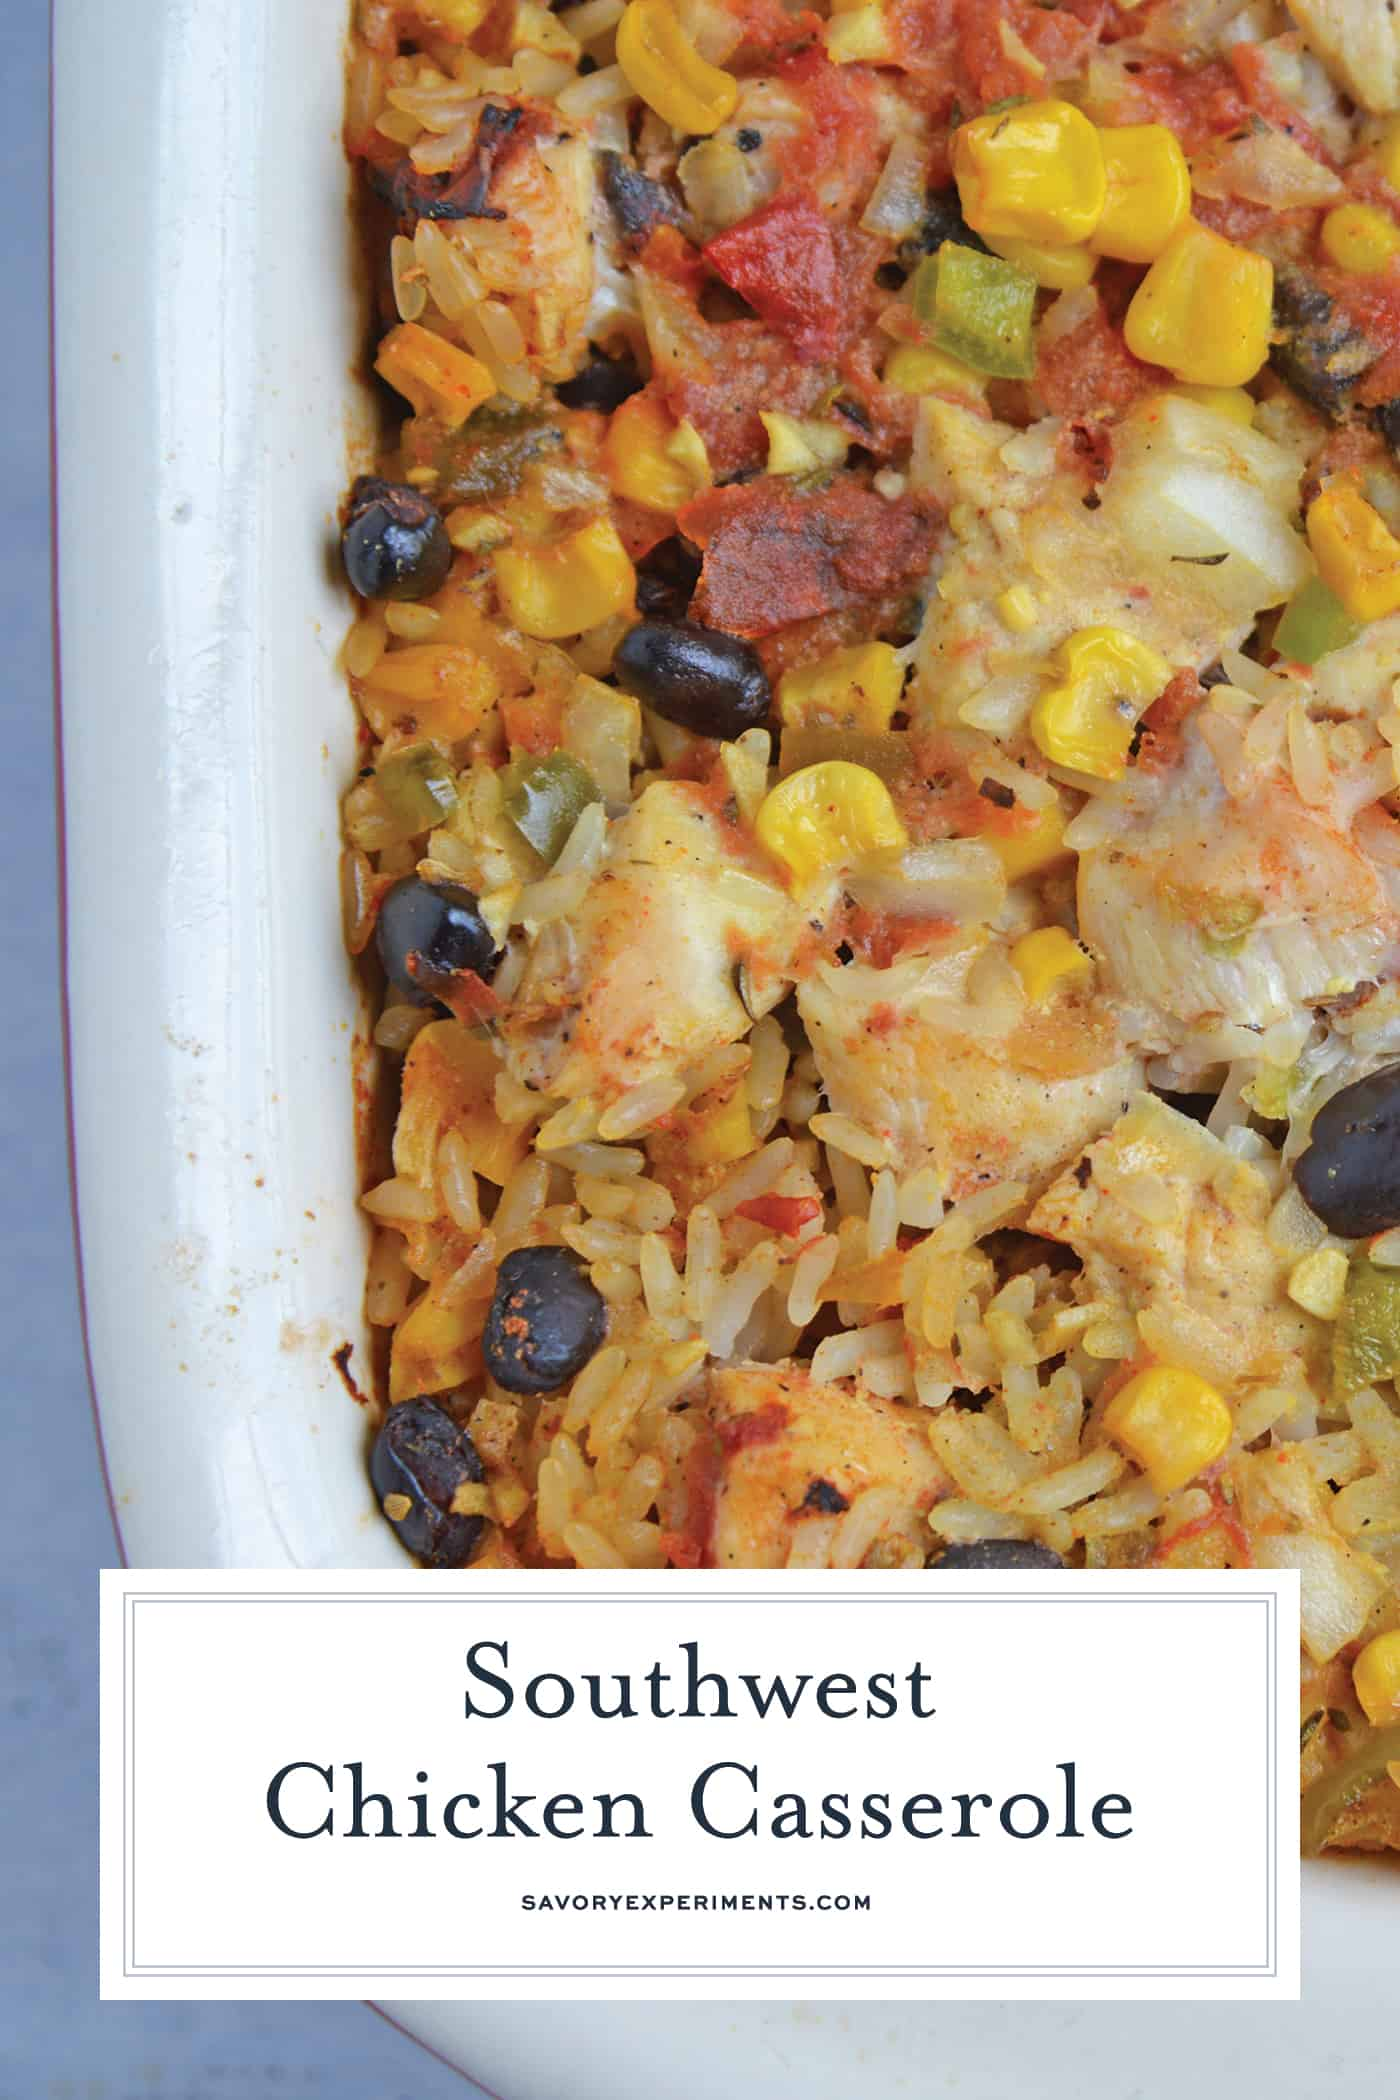 Southwest Chicken Casserole is an easy one-dish meal using chicken, rice, black beans, tomato, corn and southwest spices. #chickencasserole #onedishchickenrecipe www.savoryexperiments.com